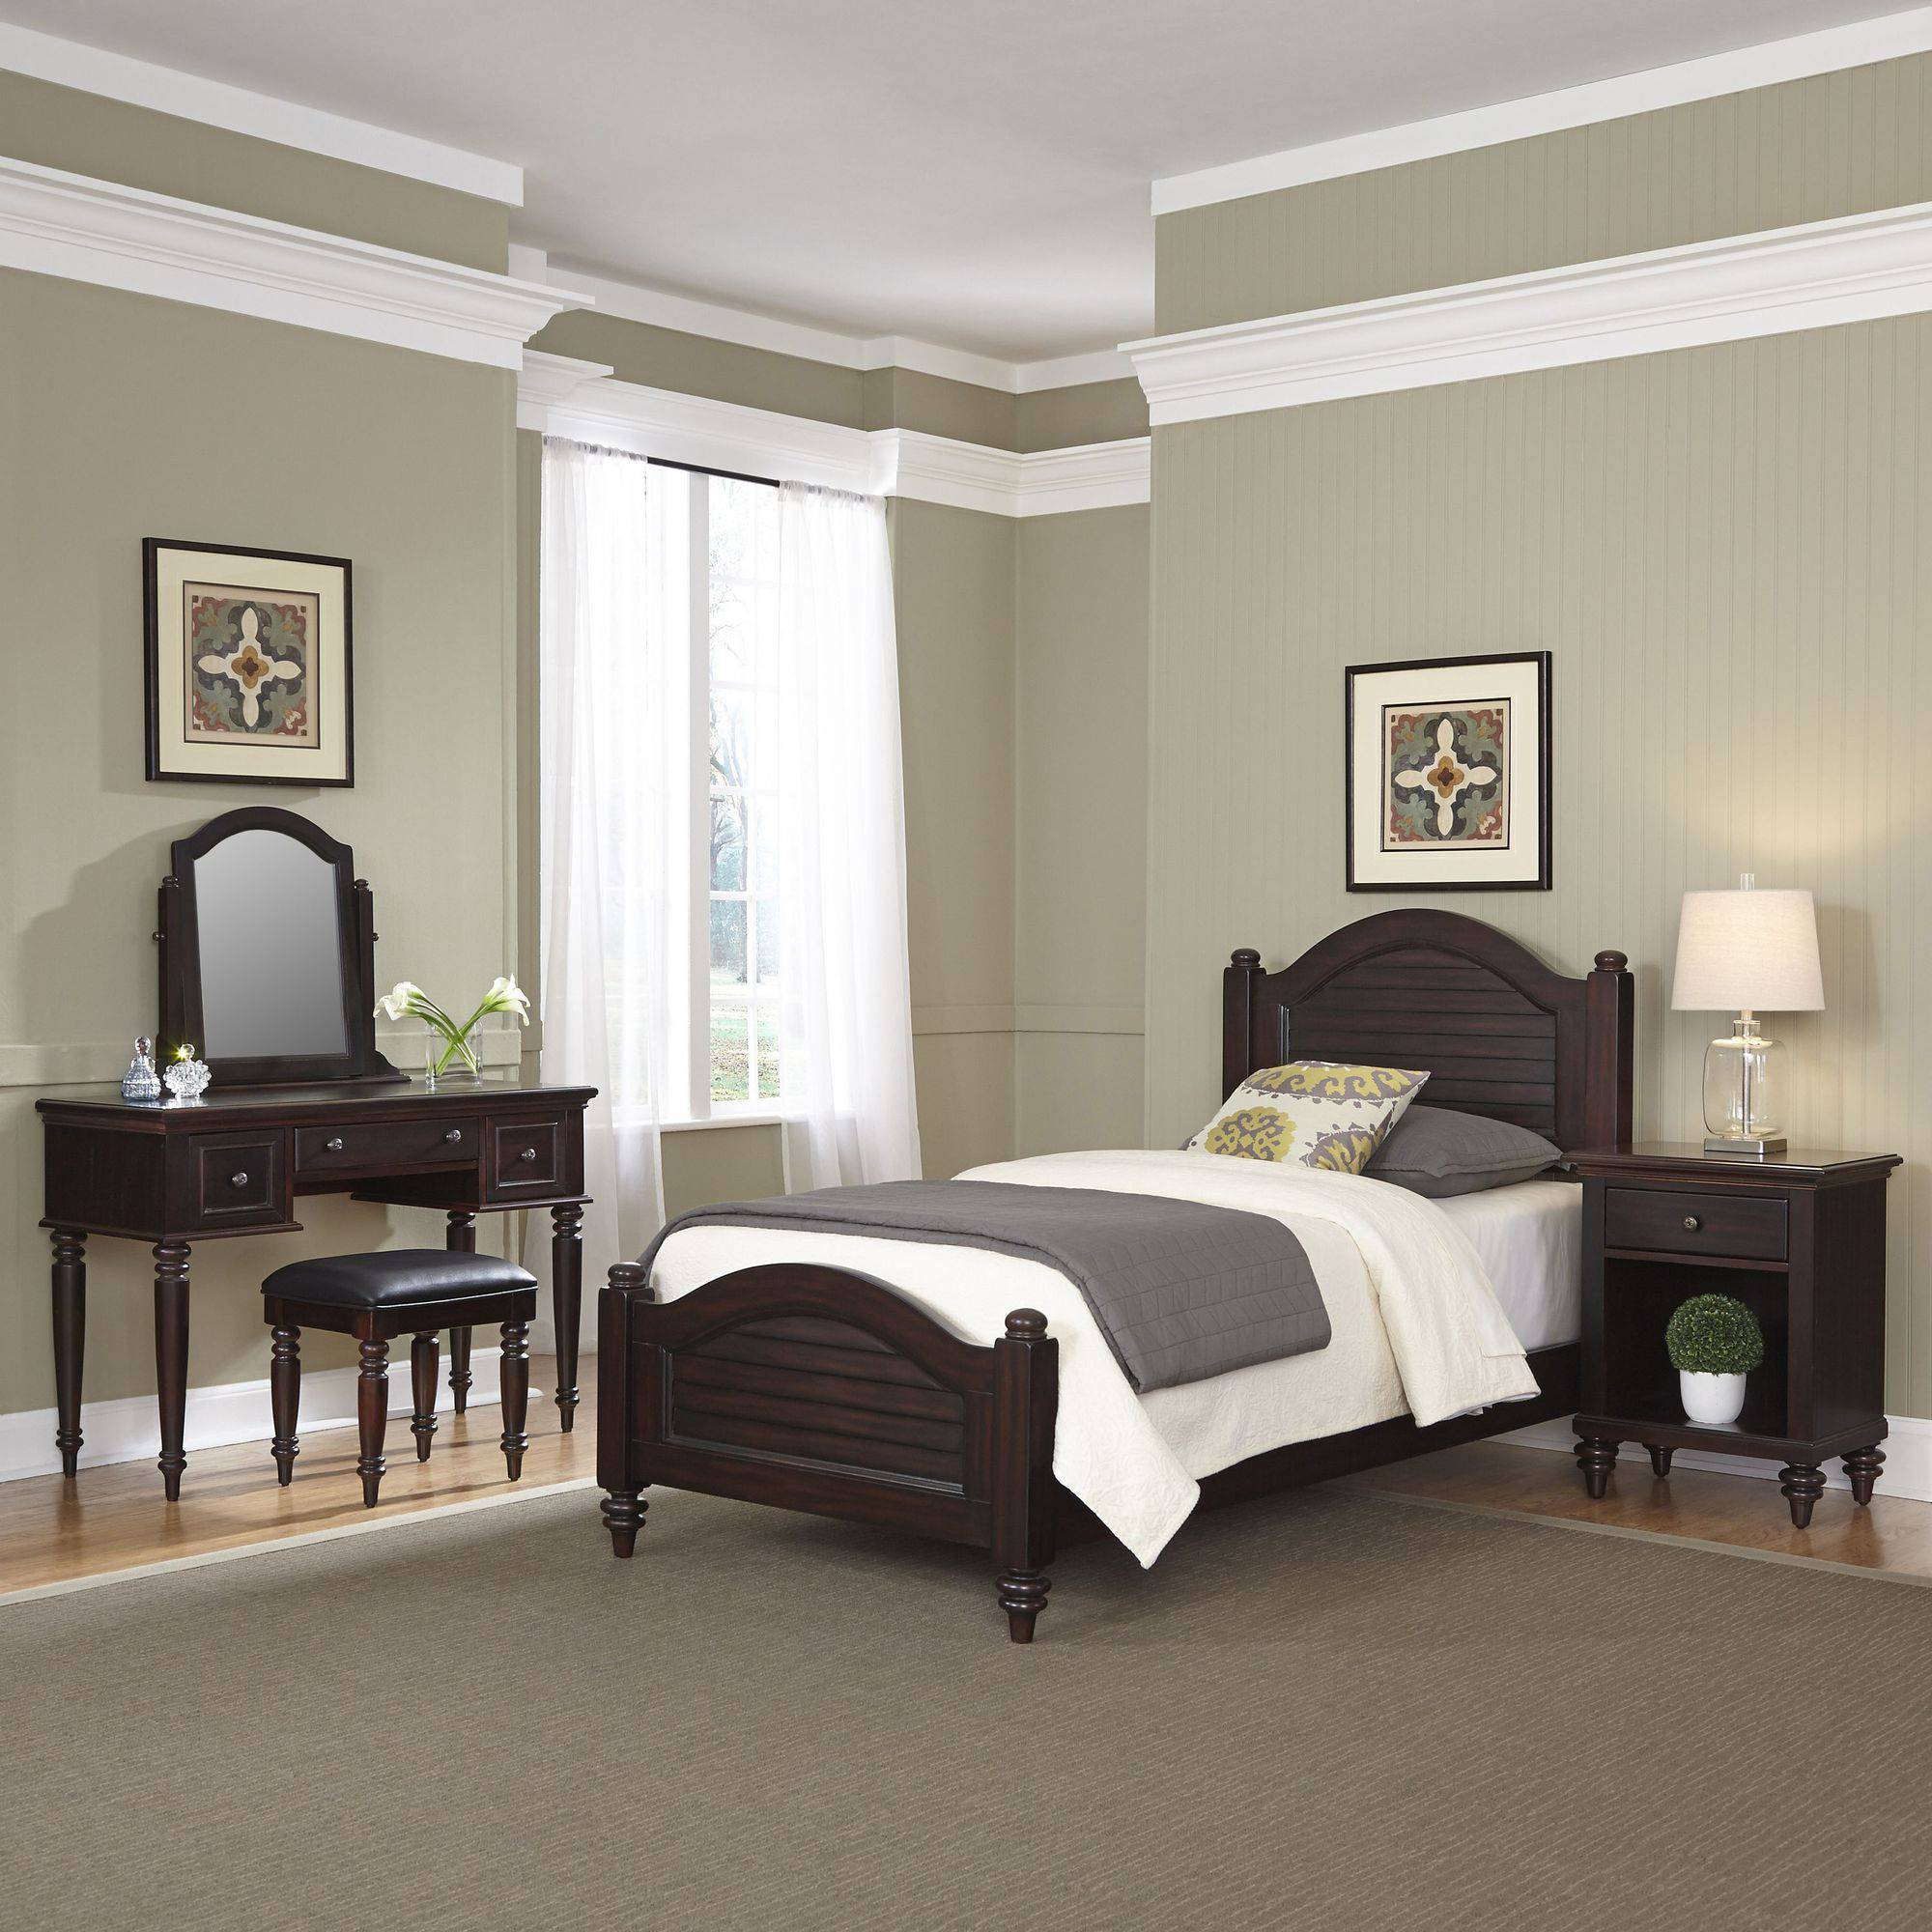 Home Styles Bermuda Bedroom Furniture Collection Espresso Finish